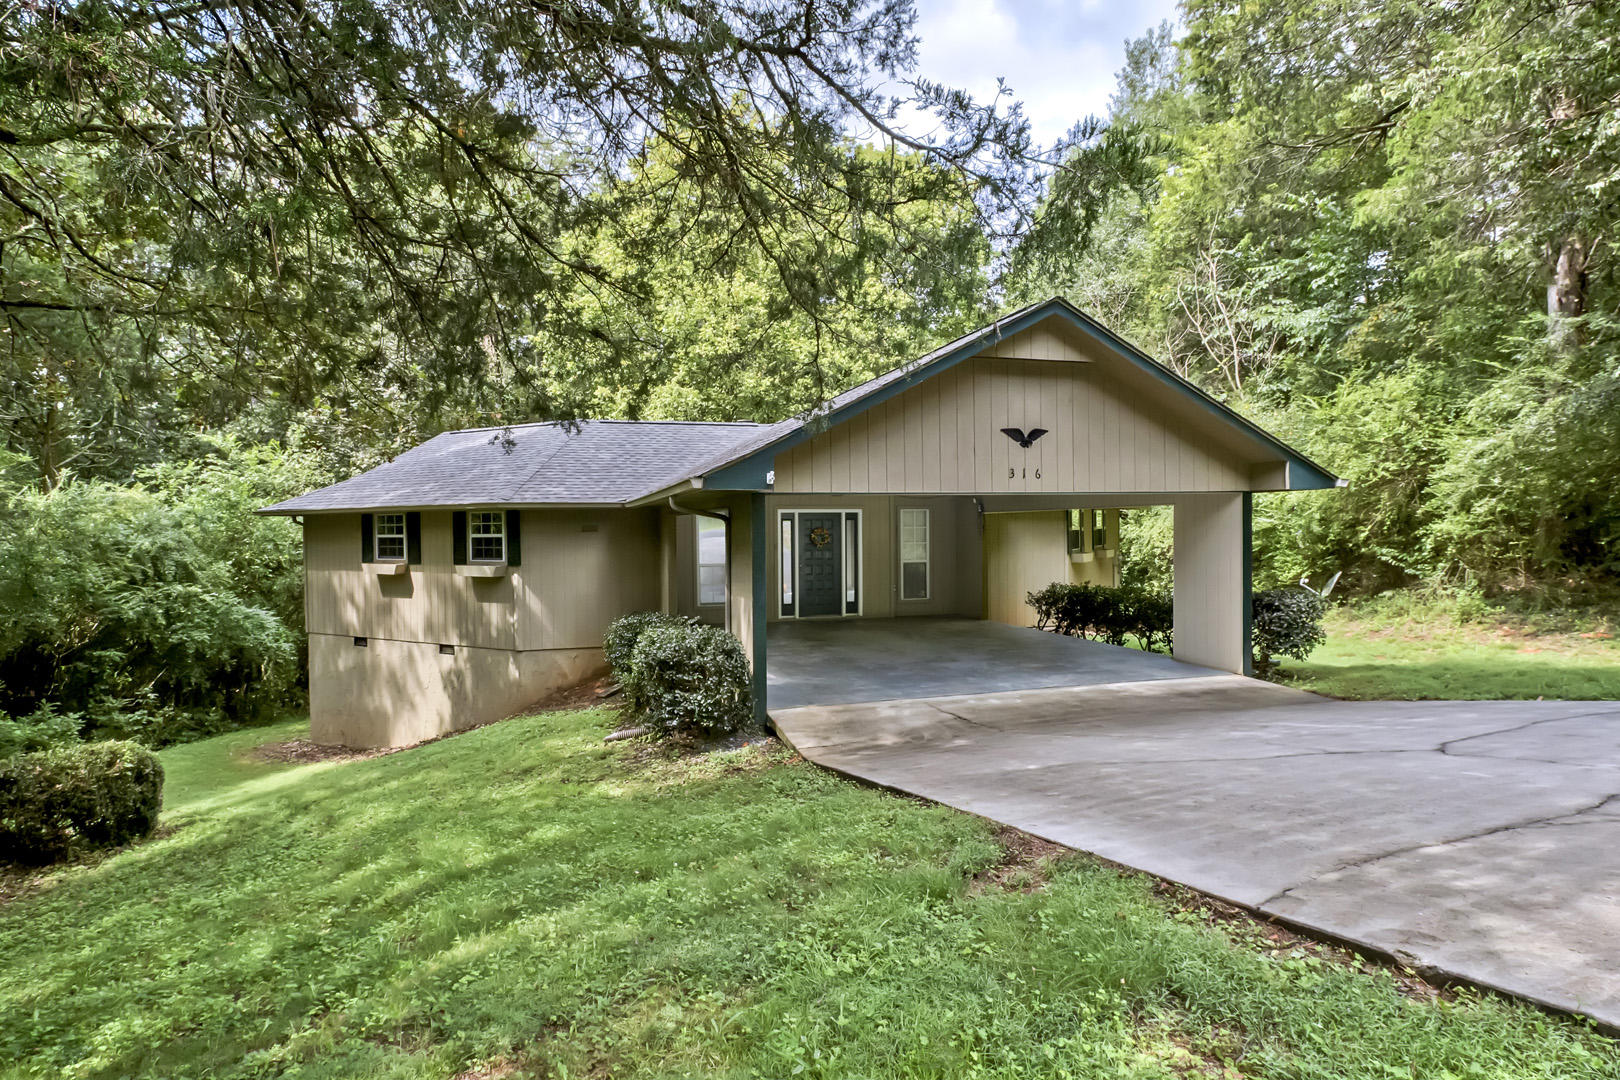 316 Cheeyo, Loudon, Tennessee, United States 37774, 2 Bedrooms Bedrooms, ,2 BathroomsBathrooms,Single Family,For Sale,Cheeyo,1128693